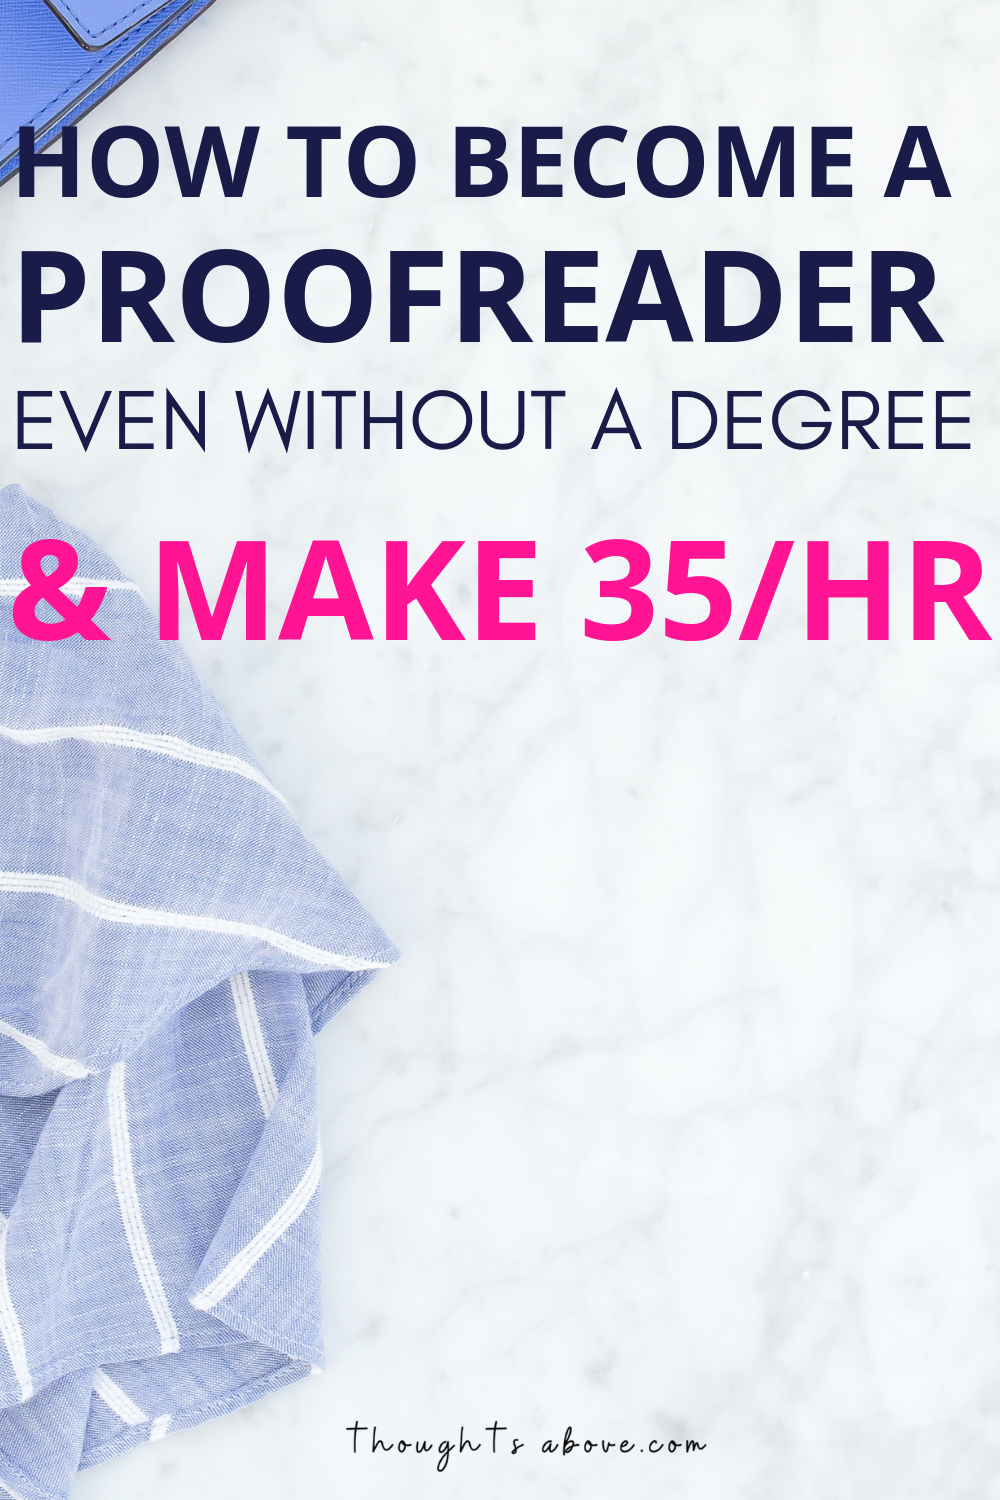 Want to become a proofreader and make extra money at home or as a side hustle or even may you want to become a proofreader court reporter and wondering where to begin? This post has the best details for a proofreader for beginners, either its proofreading training, courses, or jobs it covered here. #Makingmoney #workfromhome #makemoney #onlinejobs #money #proofreader #freelancer #workathome #extramoney